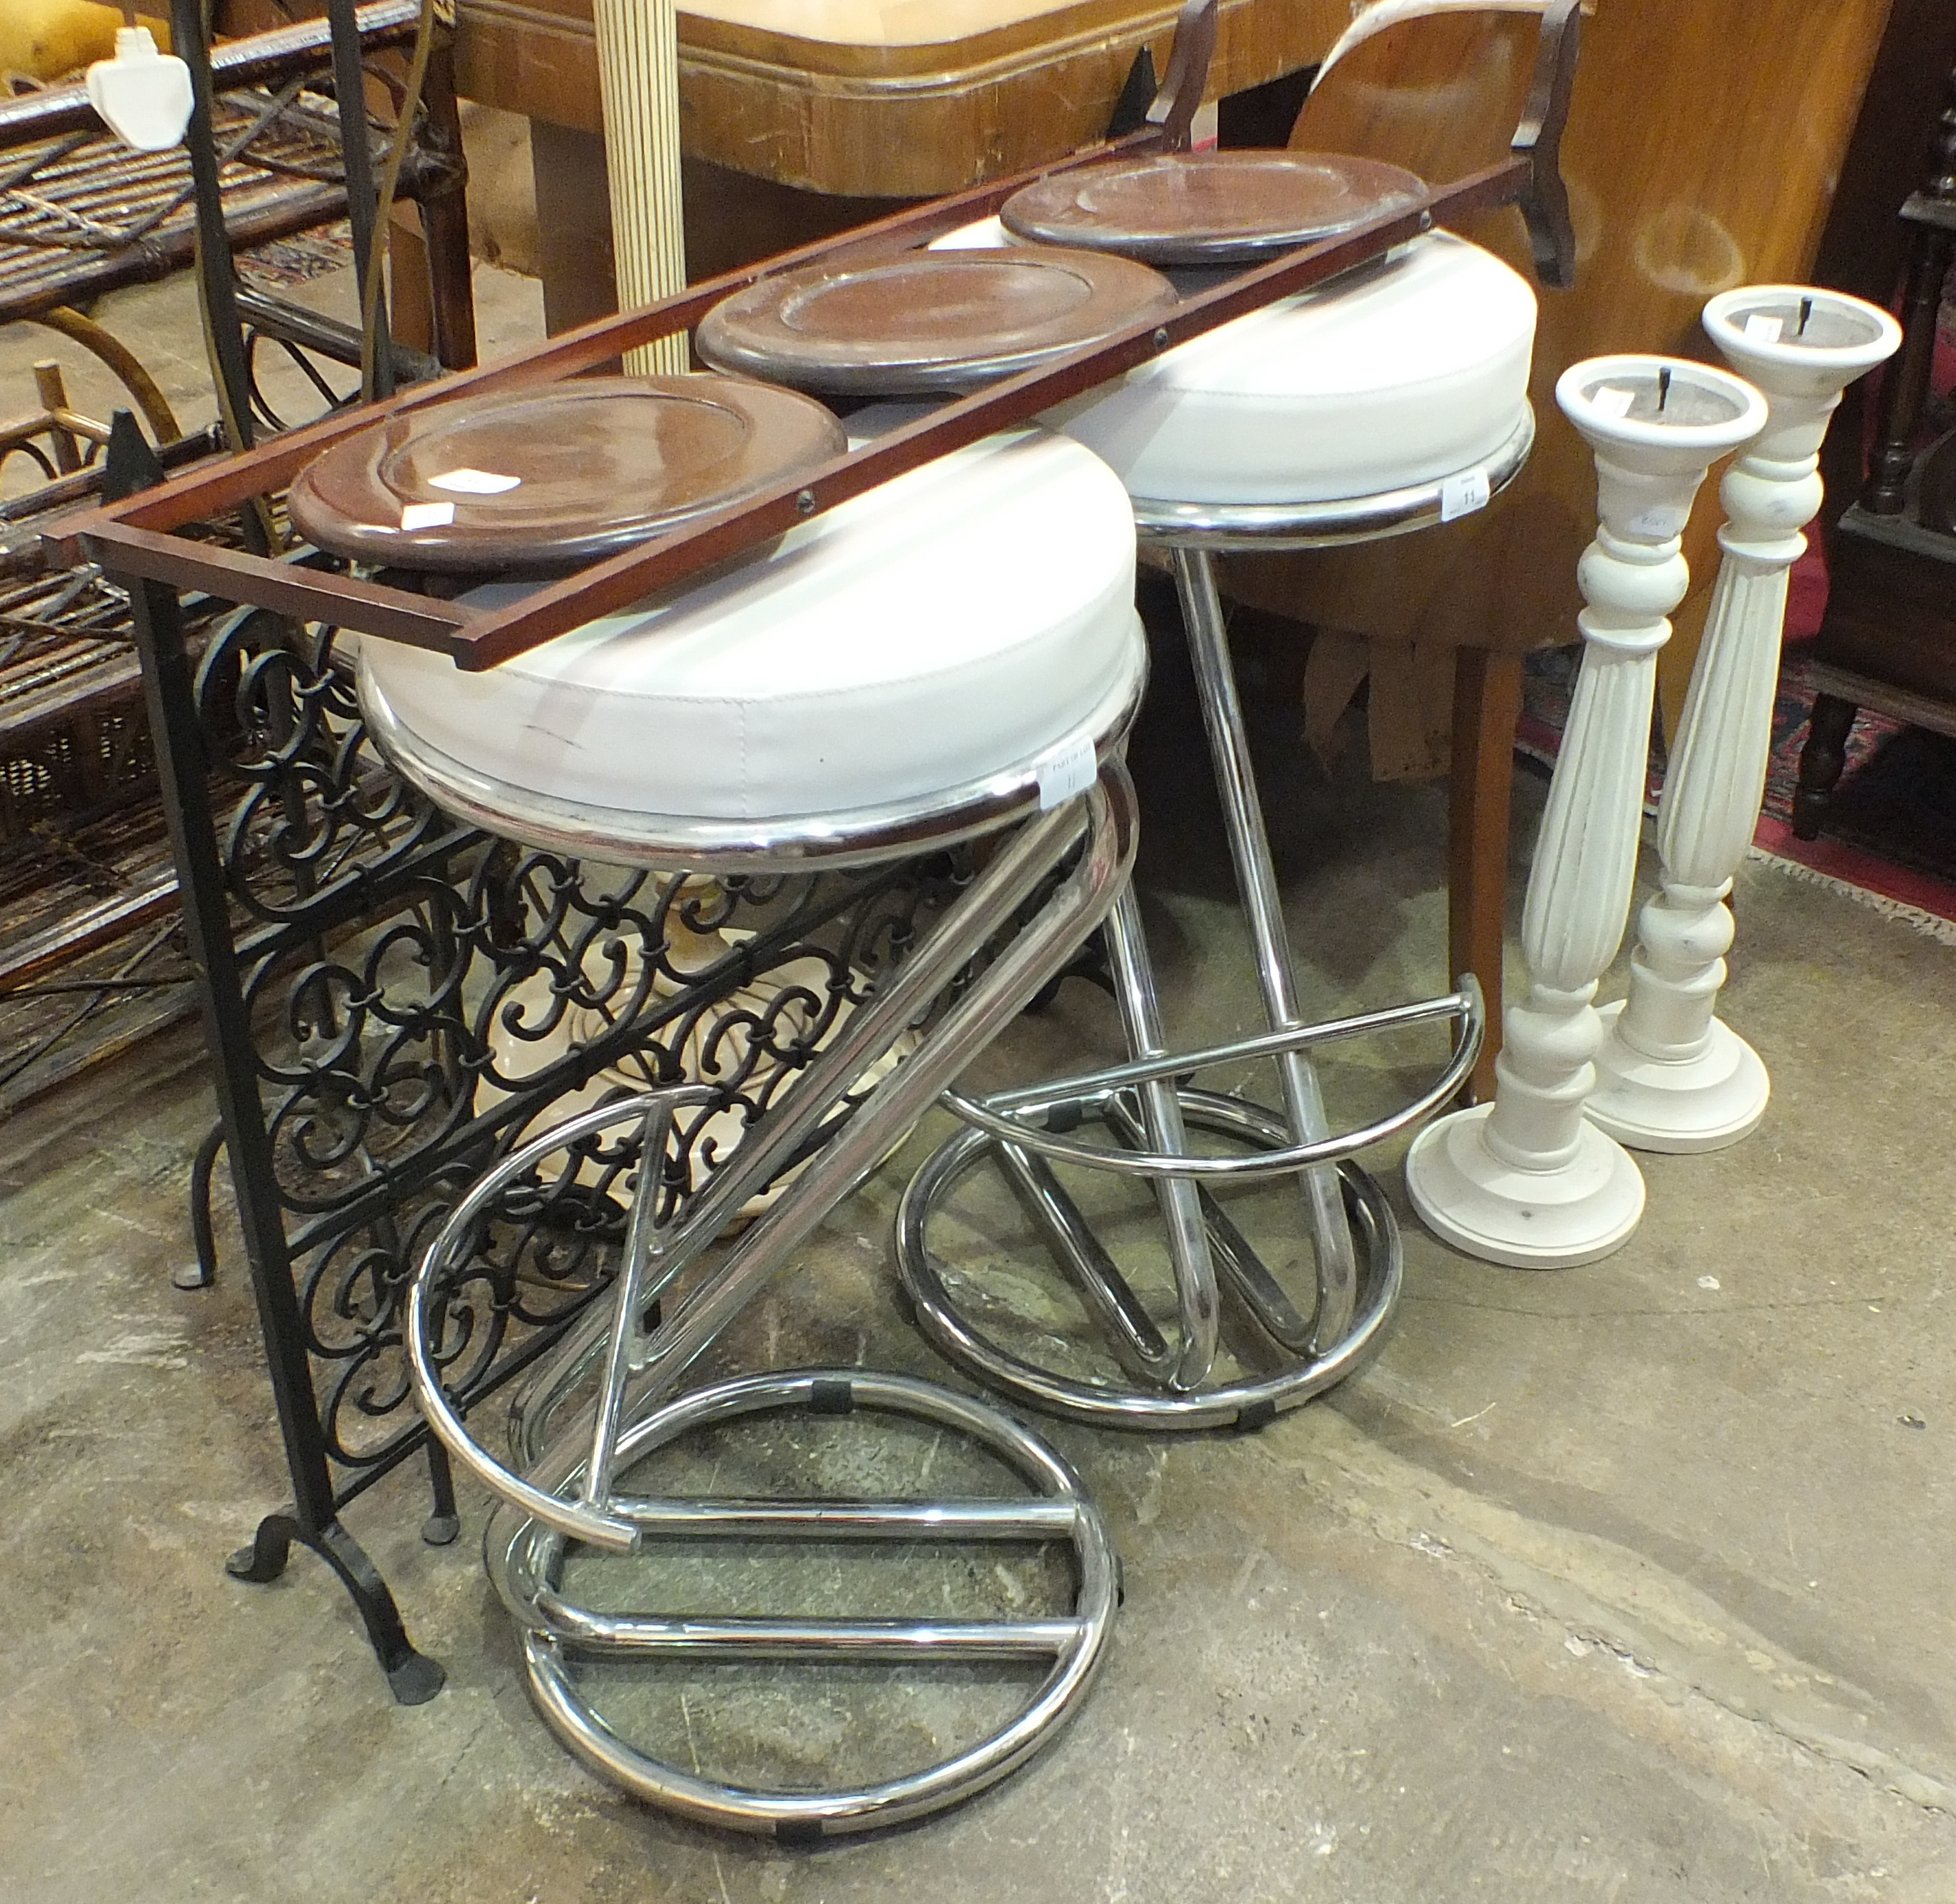 Lot 11 - A mahogany three-tier folding cake stand, a pair of modern chrome-framed breakfast bar stools and